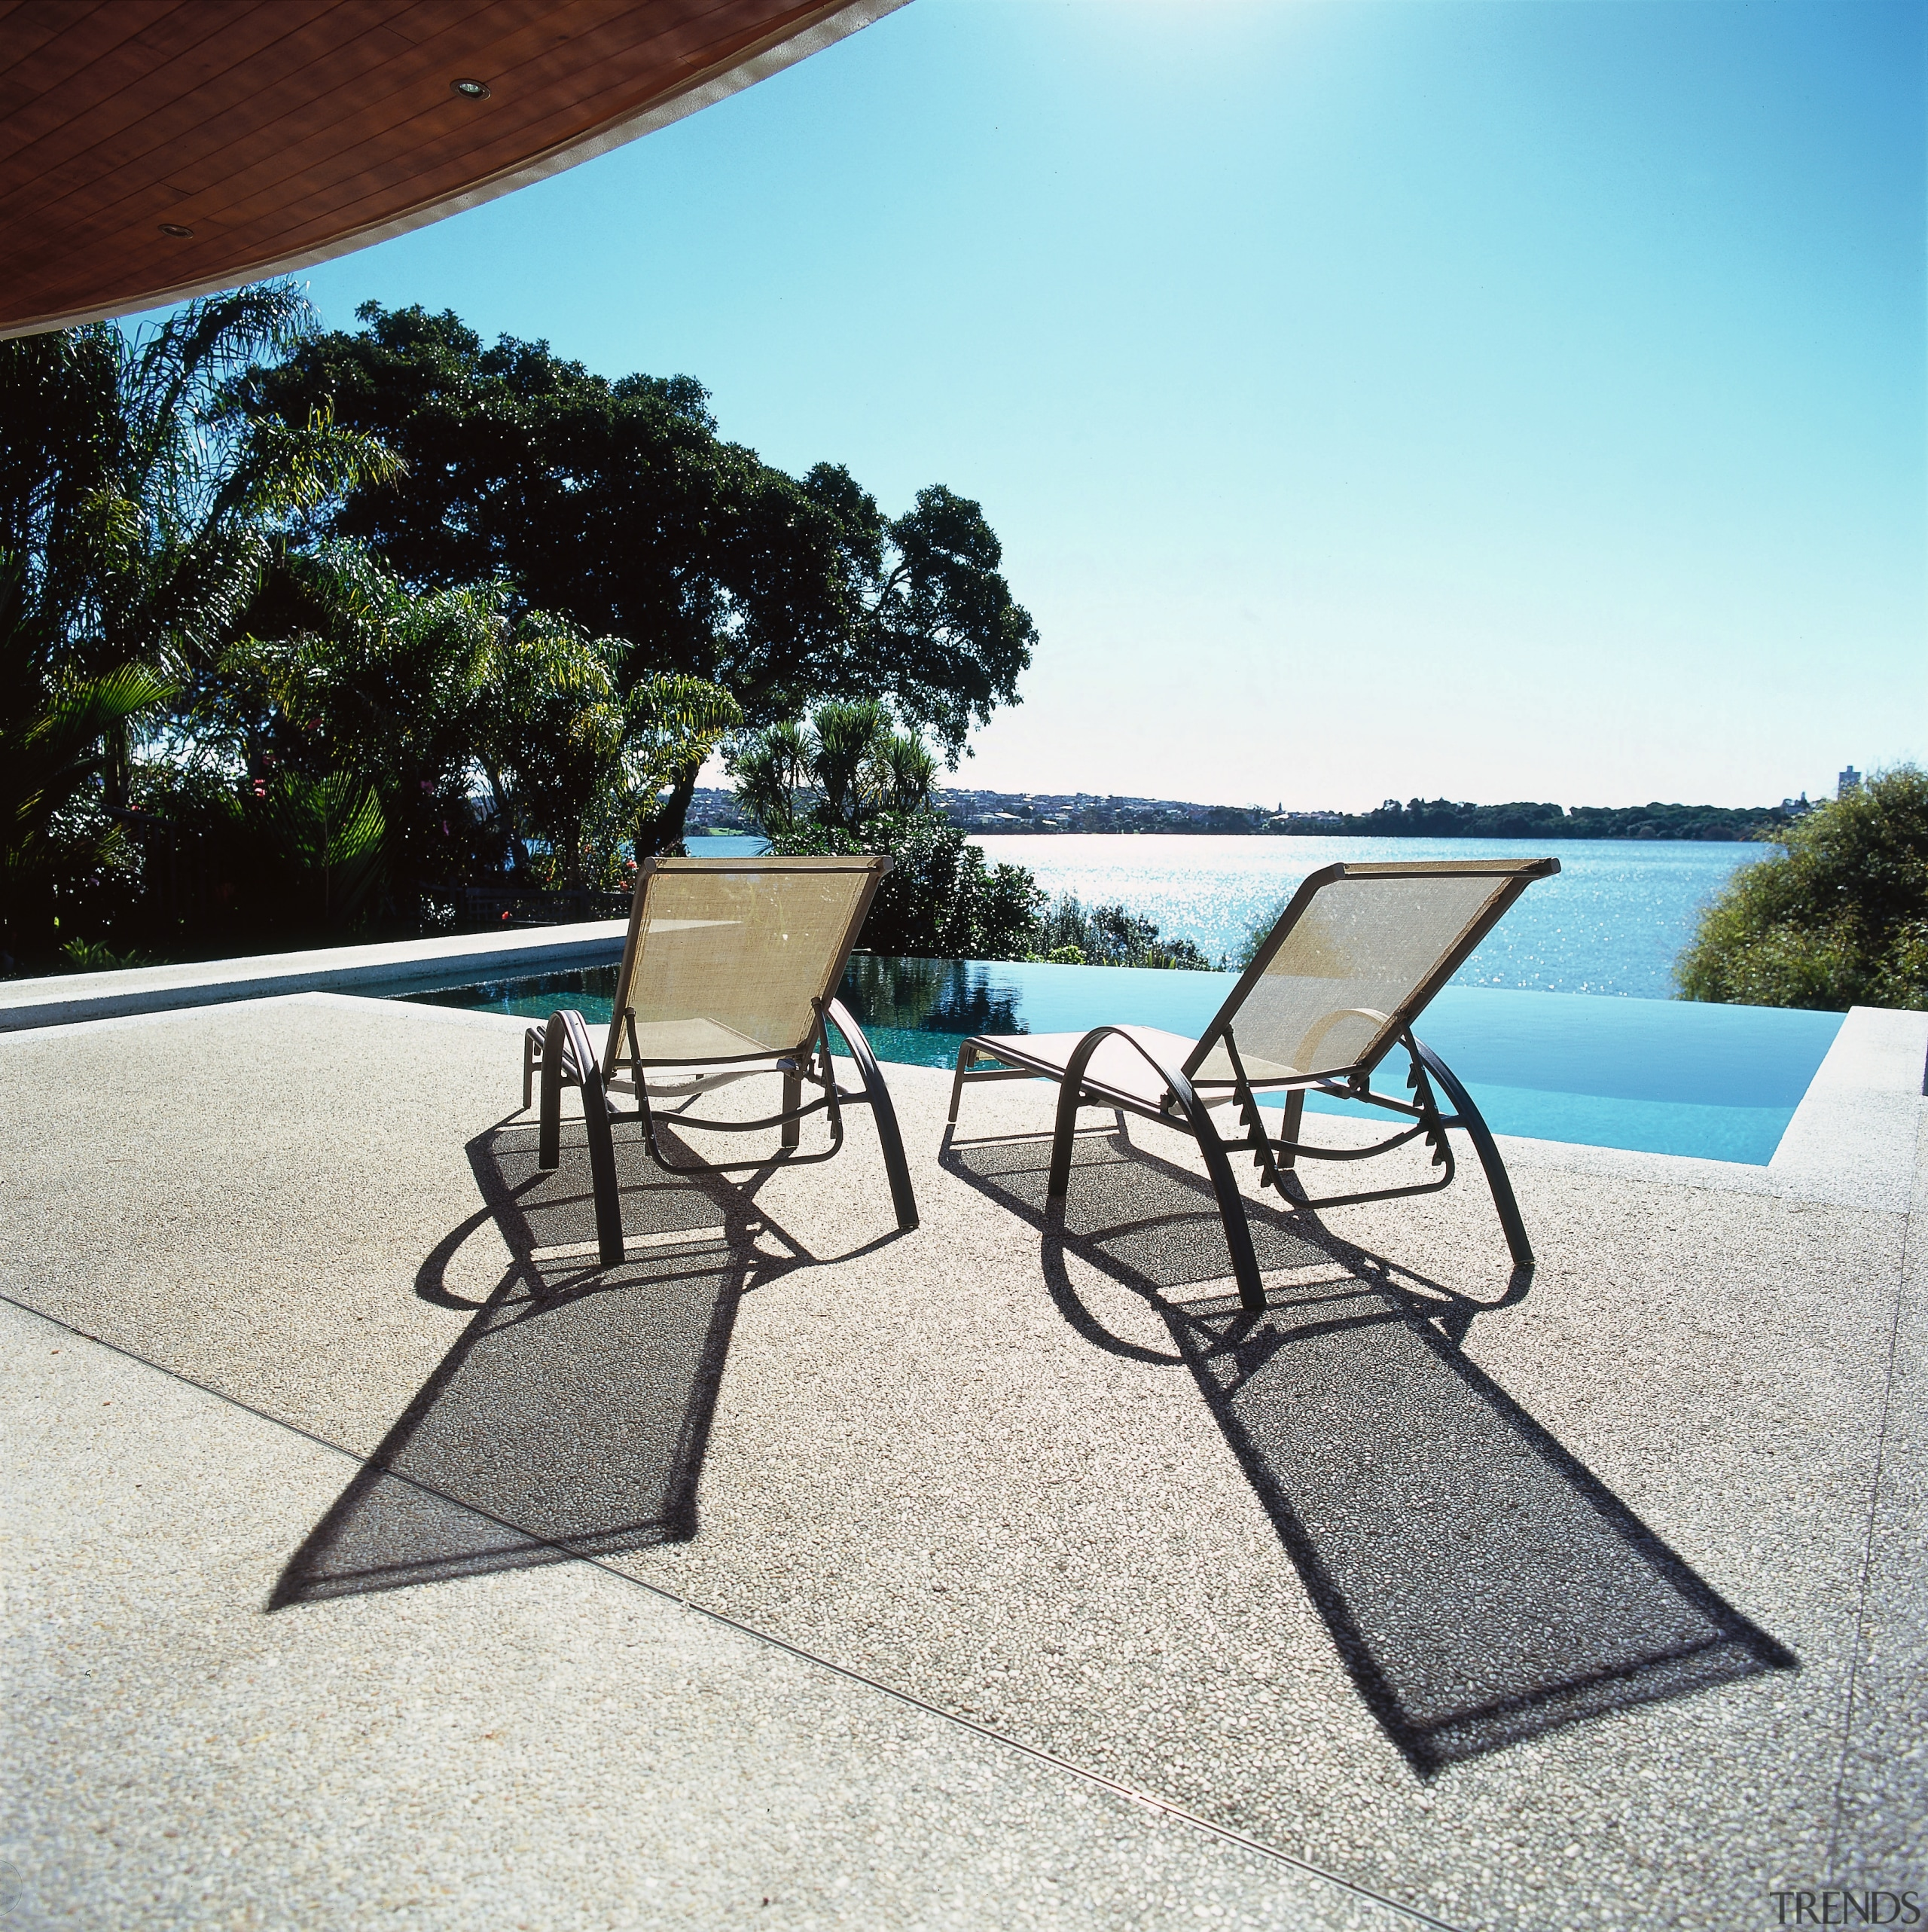 Pool with wet edge looking out to lake, chair, estate, floor, furniture, leisure, outdoor furniture, outdoor structure, property, real estate, sunlounger, swimming pool, table, vacation, water, white